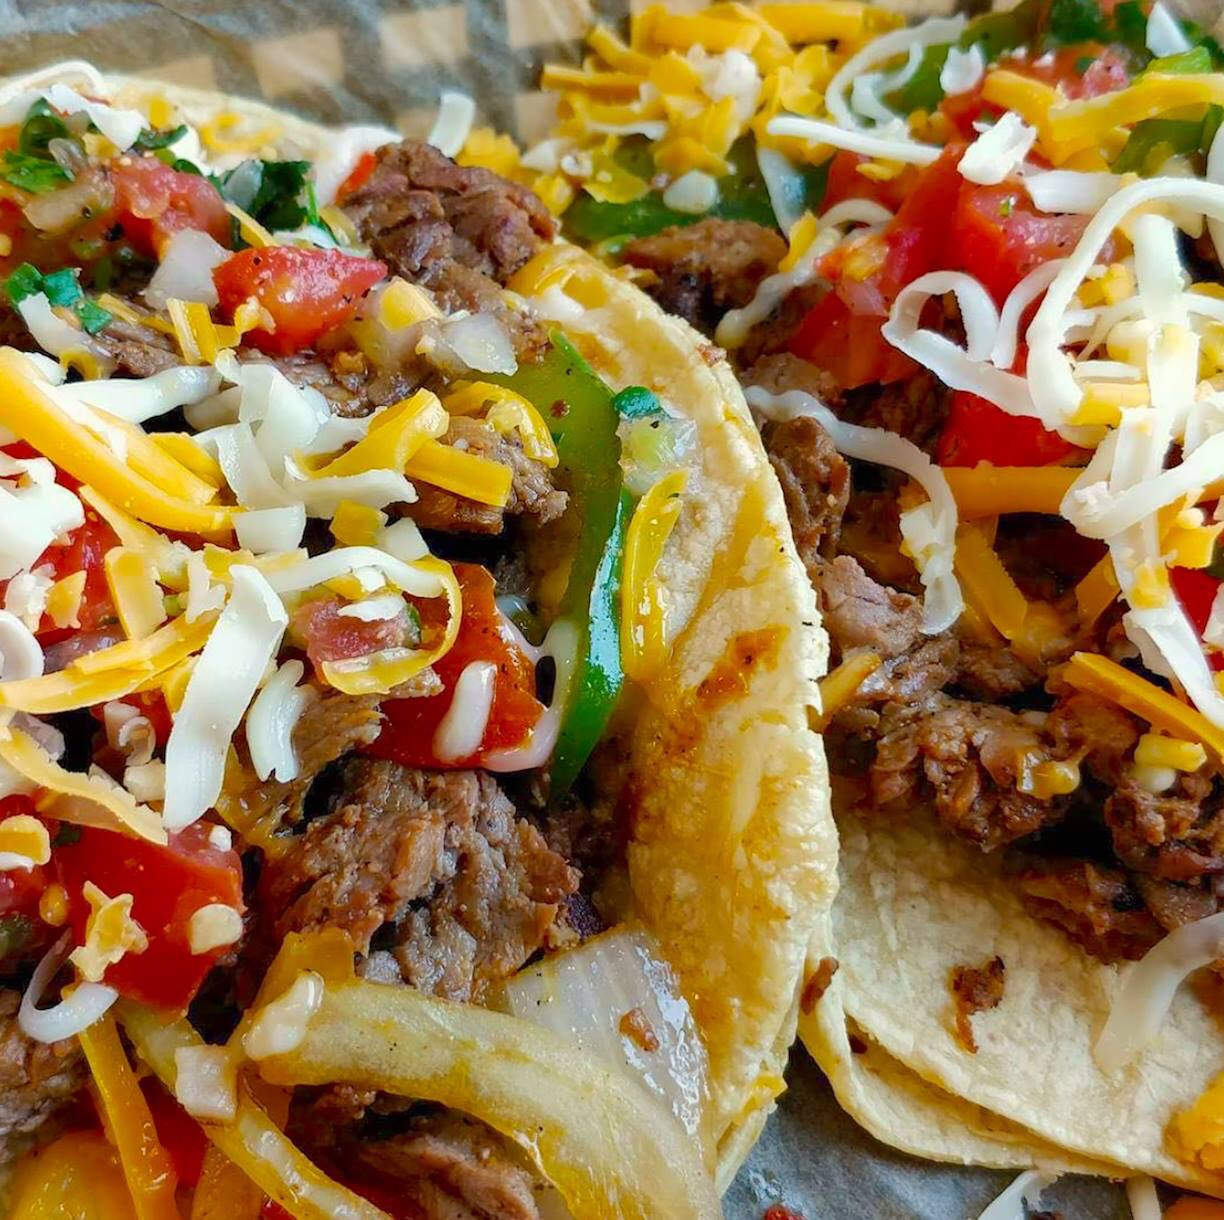 Torchy's Tacos Beef Fajita Taco made with MARINATED & GRILLED BEEF, GRILLED ONIONS & PEPPERS, PICO DE GALLO & CHEDDAR JACK CHEESE WITH ROJA SAUCE ON YOUR CHOICE OF TORTILLA.